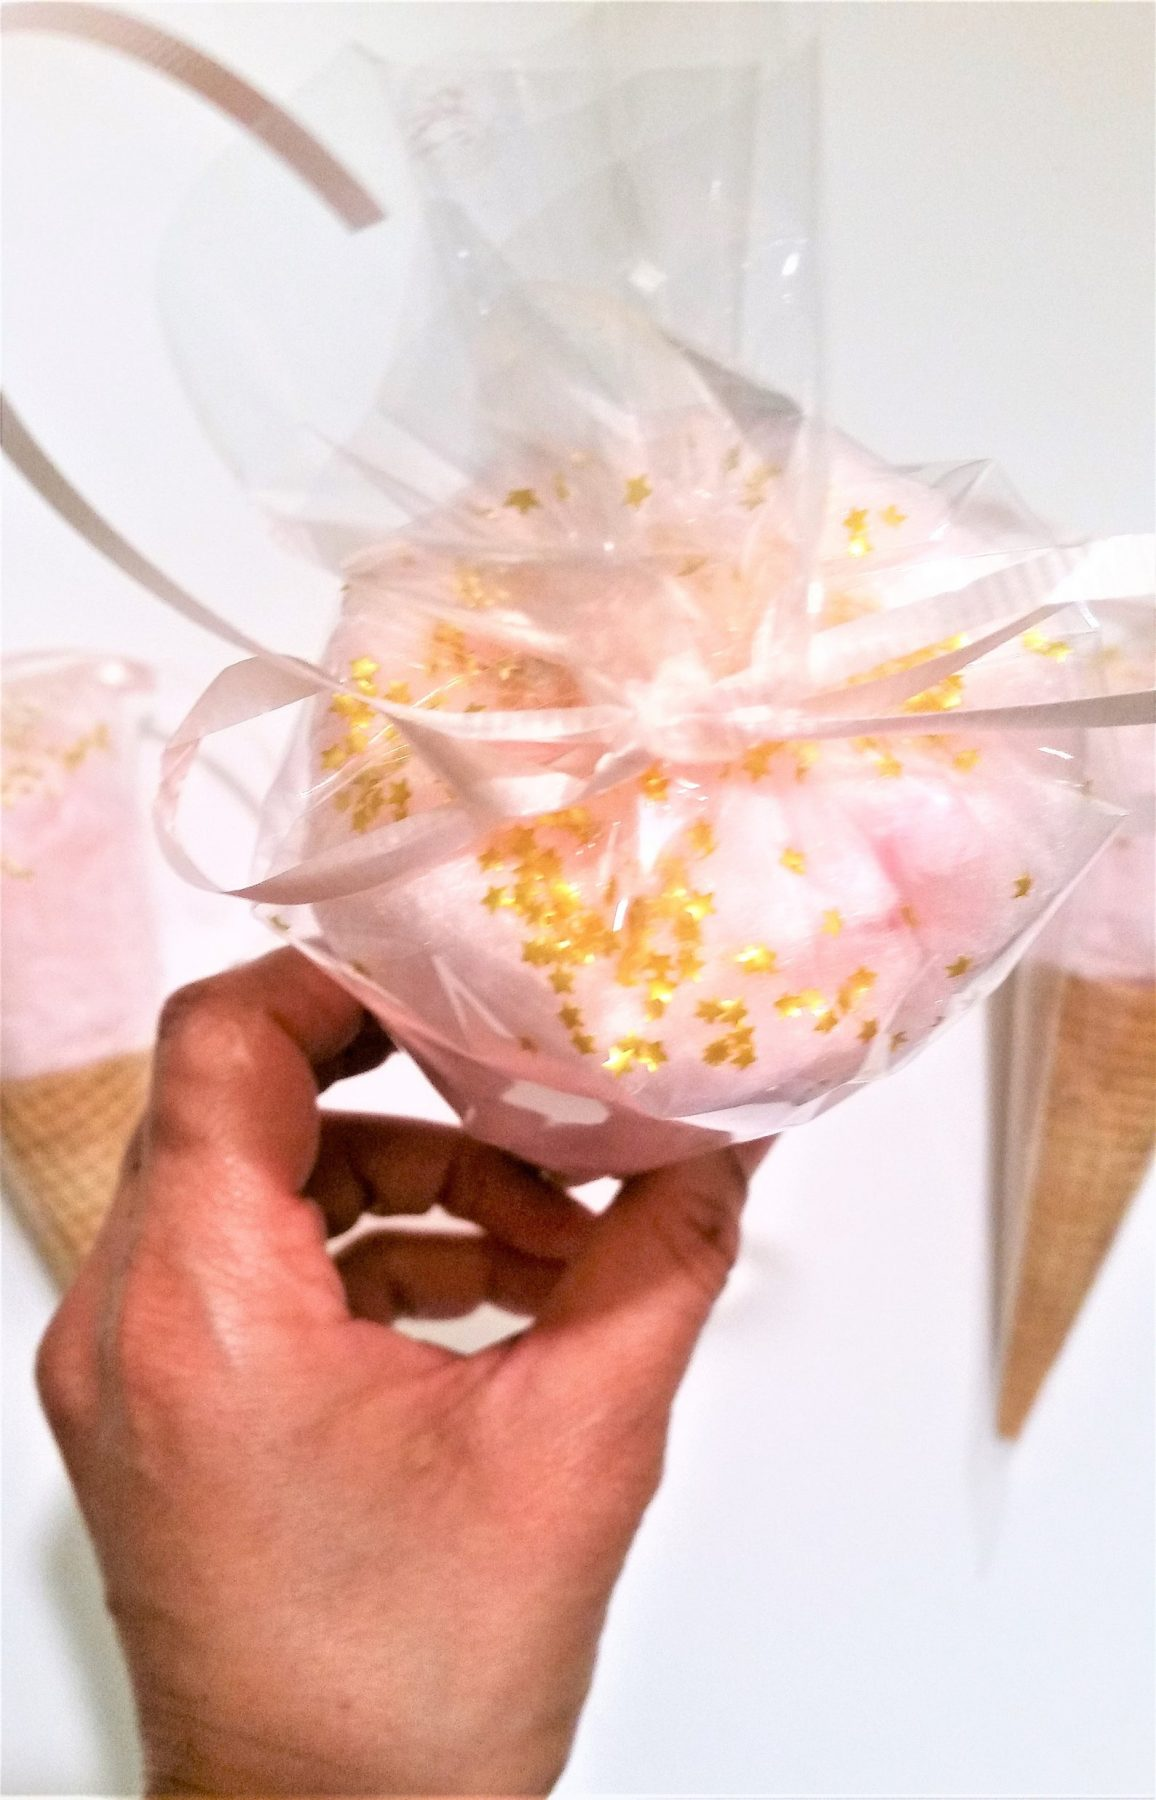 Cotton Candy Ice Cream Cones from Puff Delights